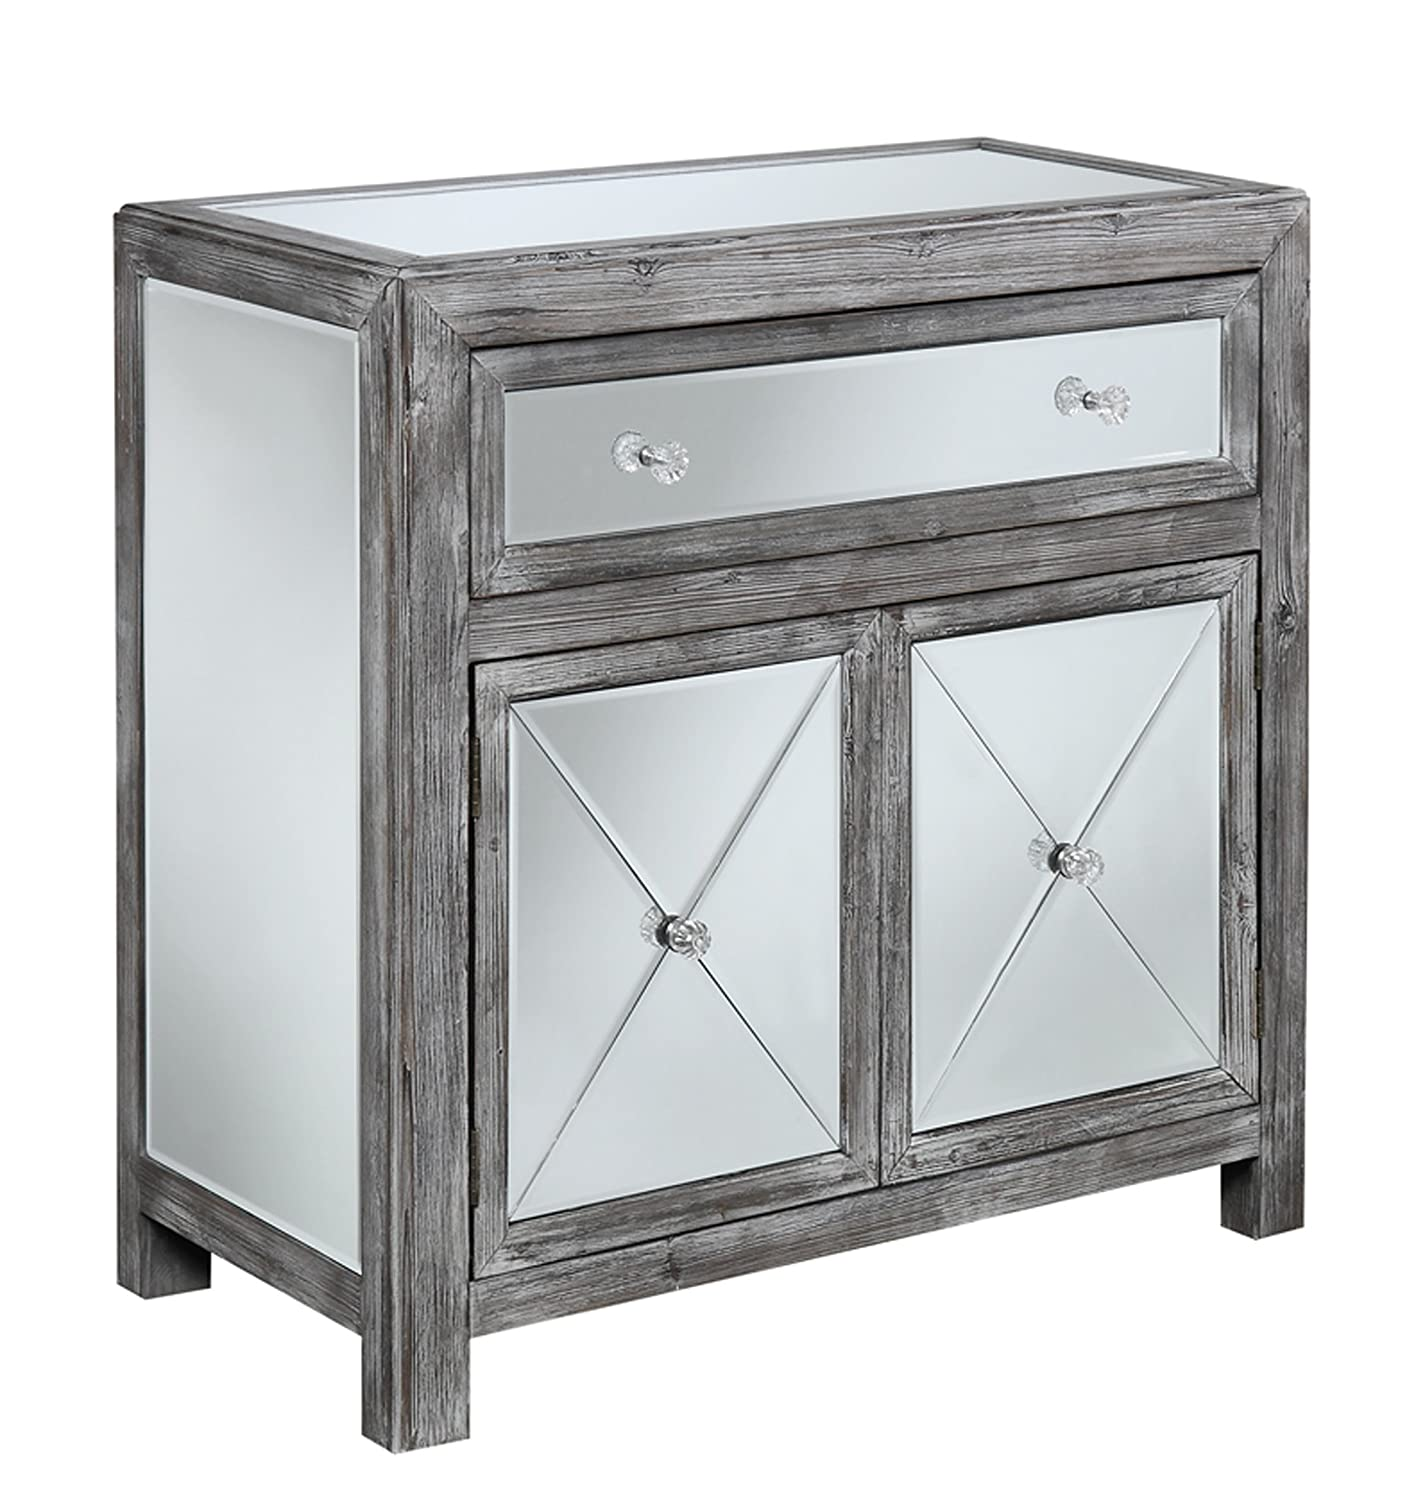 amazoncom convenience concepts gold coast collection vineyard mirrored cabinet weathered graymirror kitchen u0026 dining